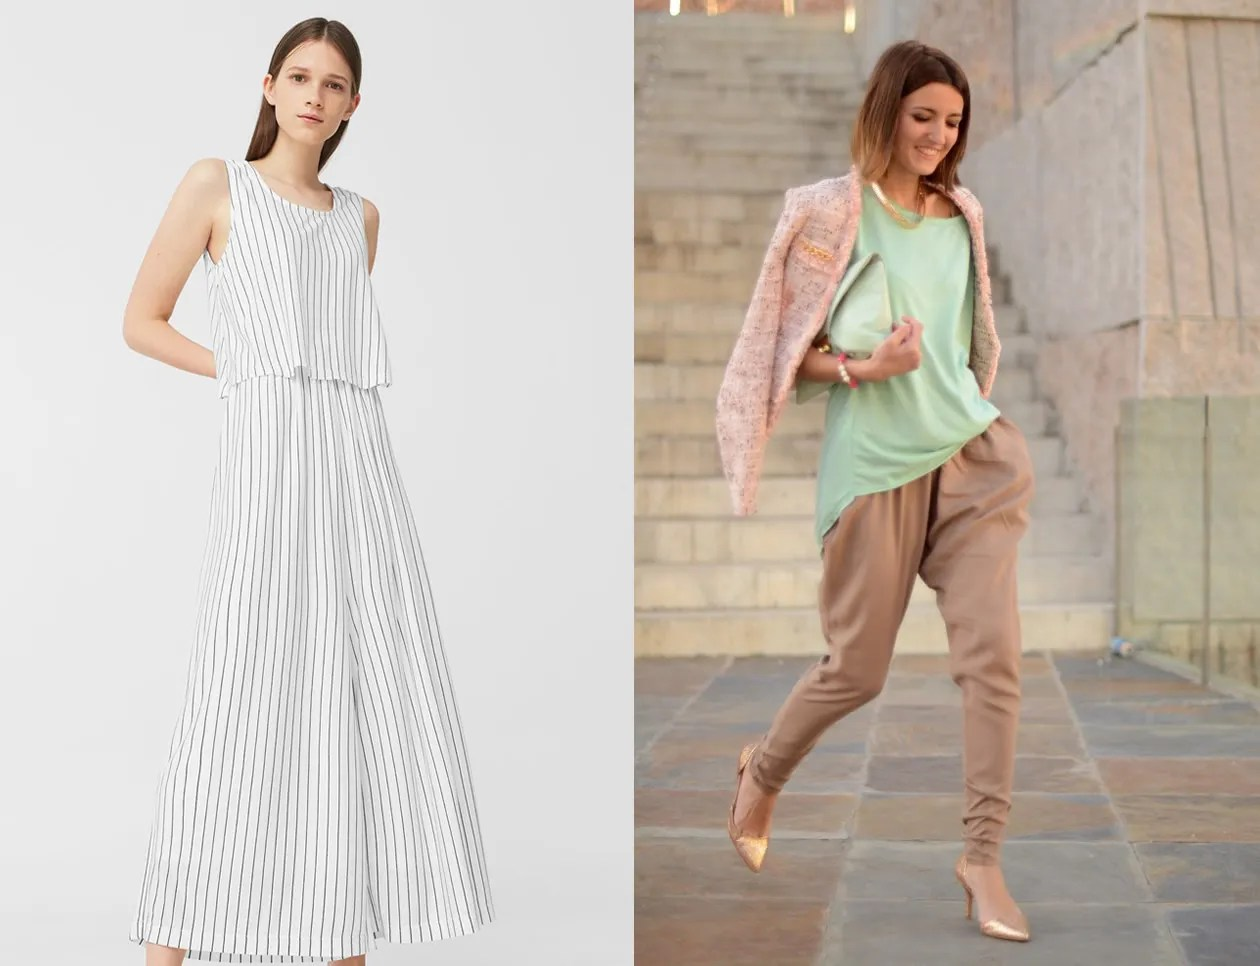 10 Best Wedding Guest Trousers Outfit Ideas For Women